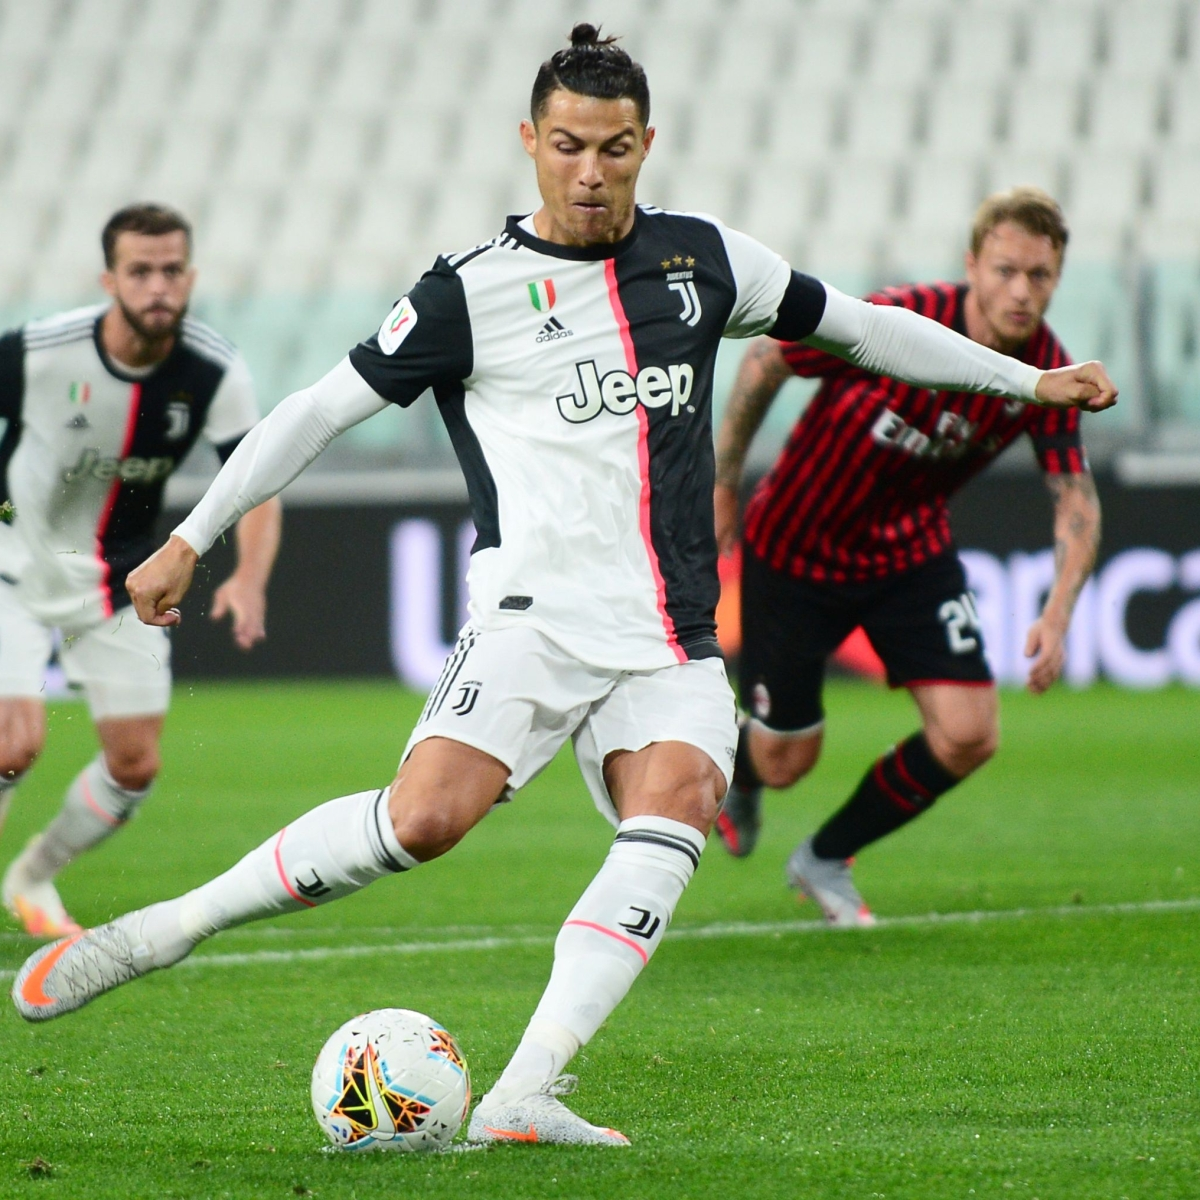 Happy Birthday Cristiano Ronaldo: 5 best performances by the G.O.A.T